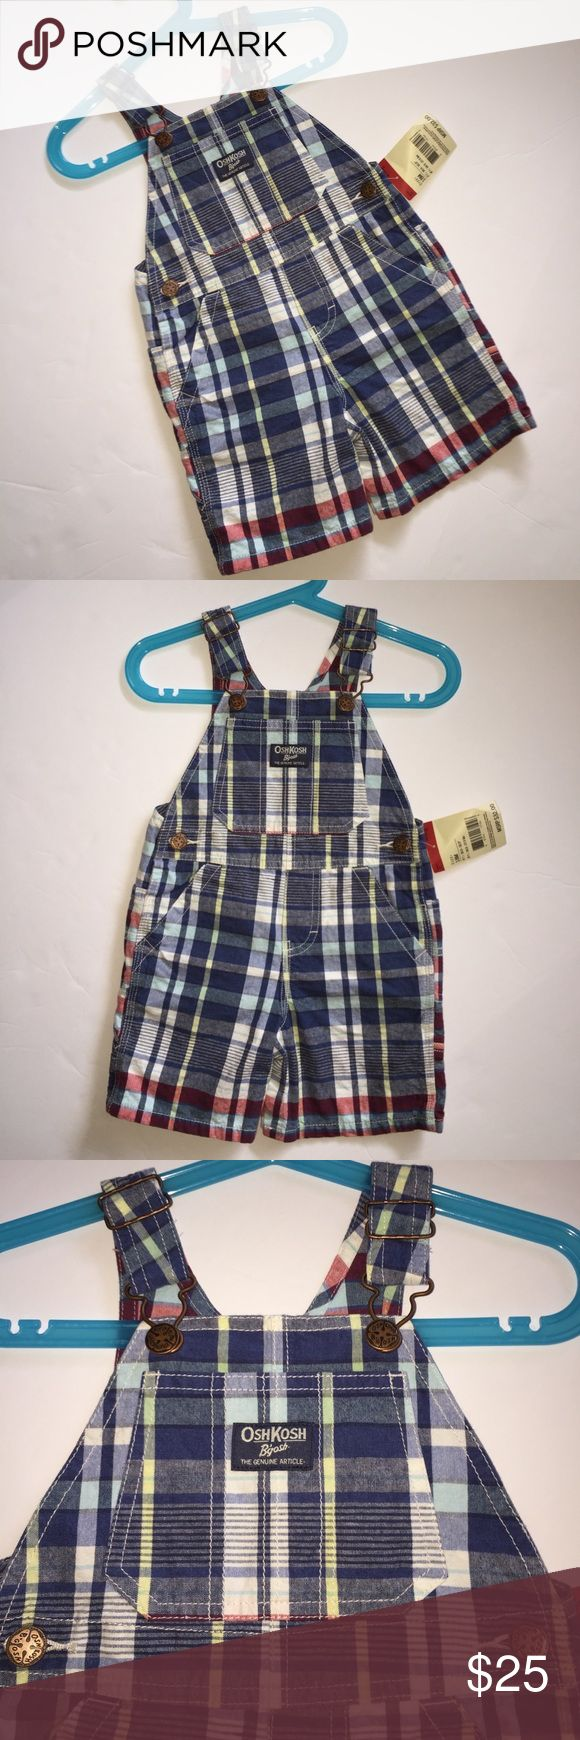 New Osh Kosh Overall shortfalls Cute Plaid Design New Osh Kosh Overall shortfalls Cute Plaid Design New OshKosh Overalls Jeans Plaid Design Look! Super Cute shortalls overalls New with tags! Super Cute Plaid colors with shades of Red, shades of Blue and Yellow.  Snaps between legs for easy dressing and adjustable top straps for perfect fit. So Adorable! Perfect for you little man. NWT's! Size 18 months OshKosh B'gosh Bottoms Overalls